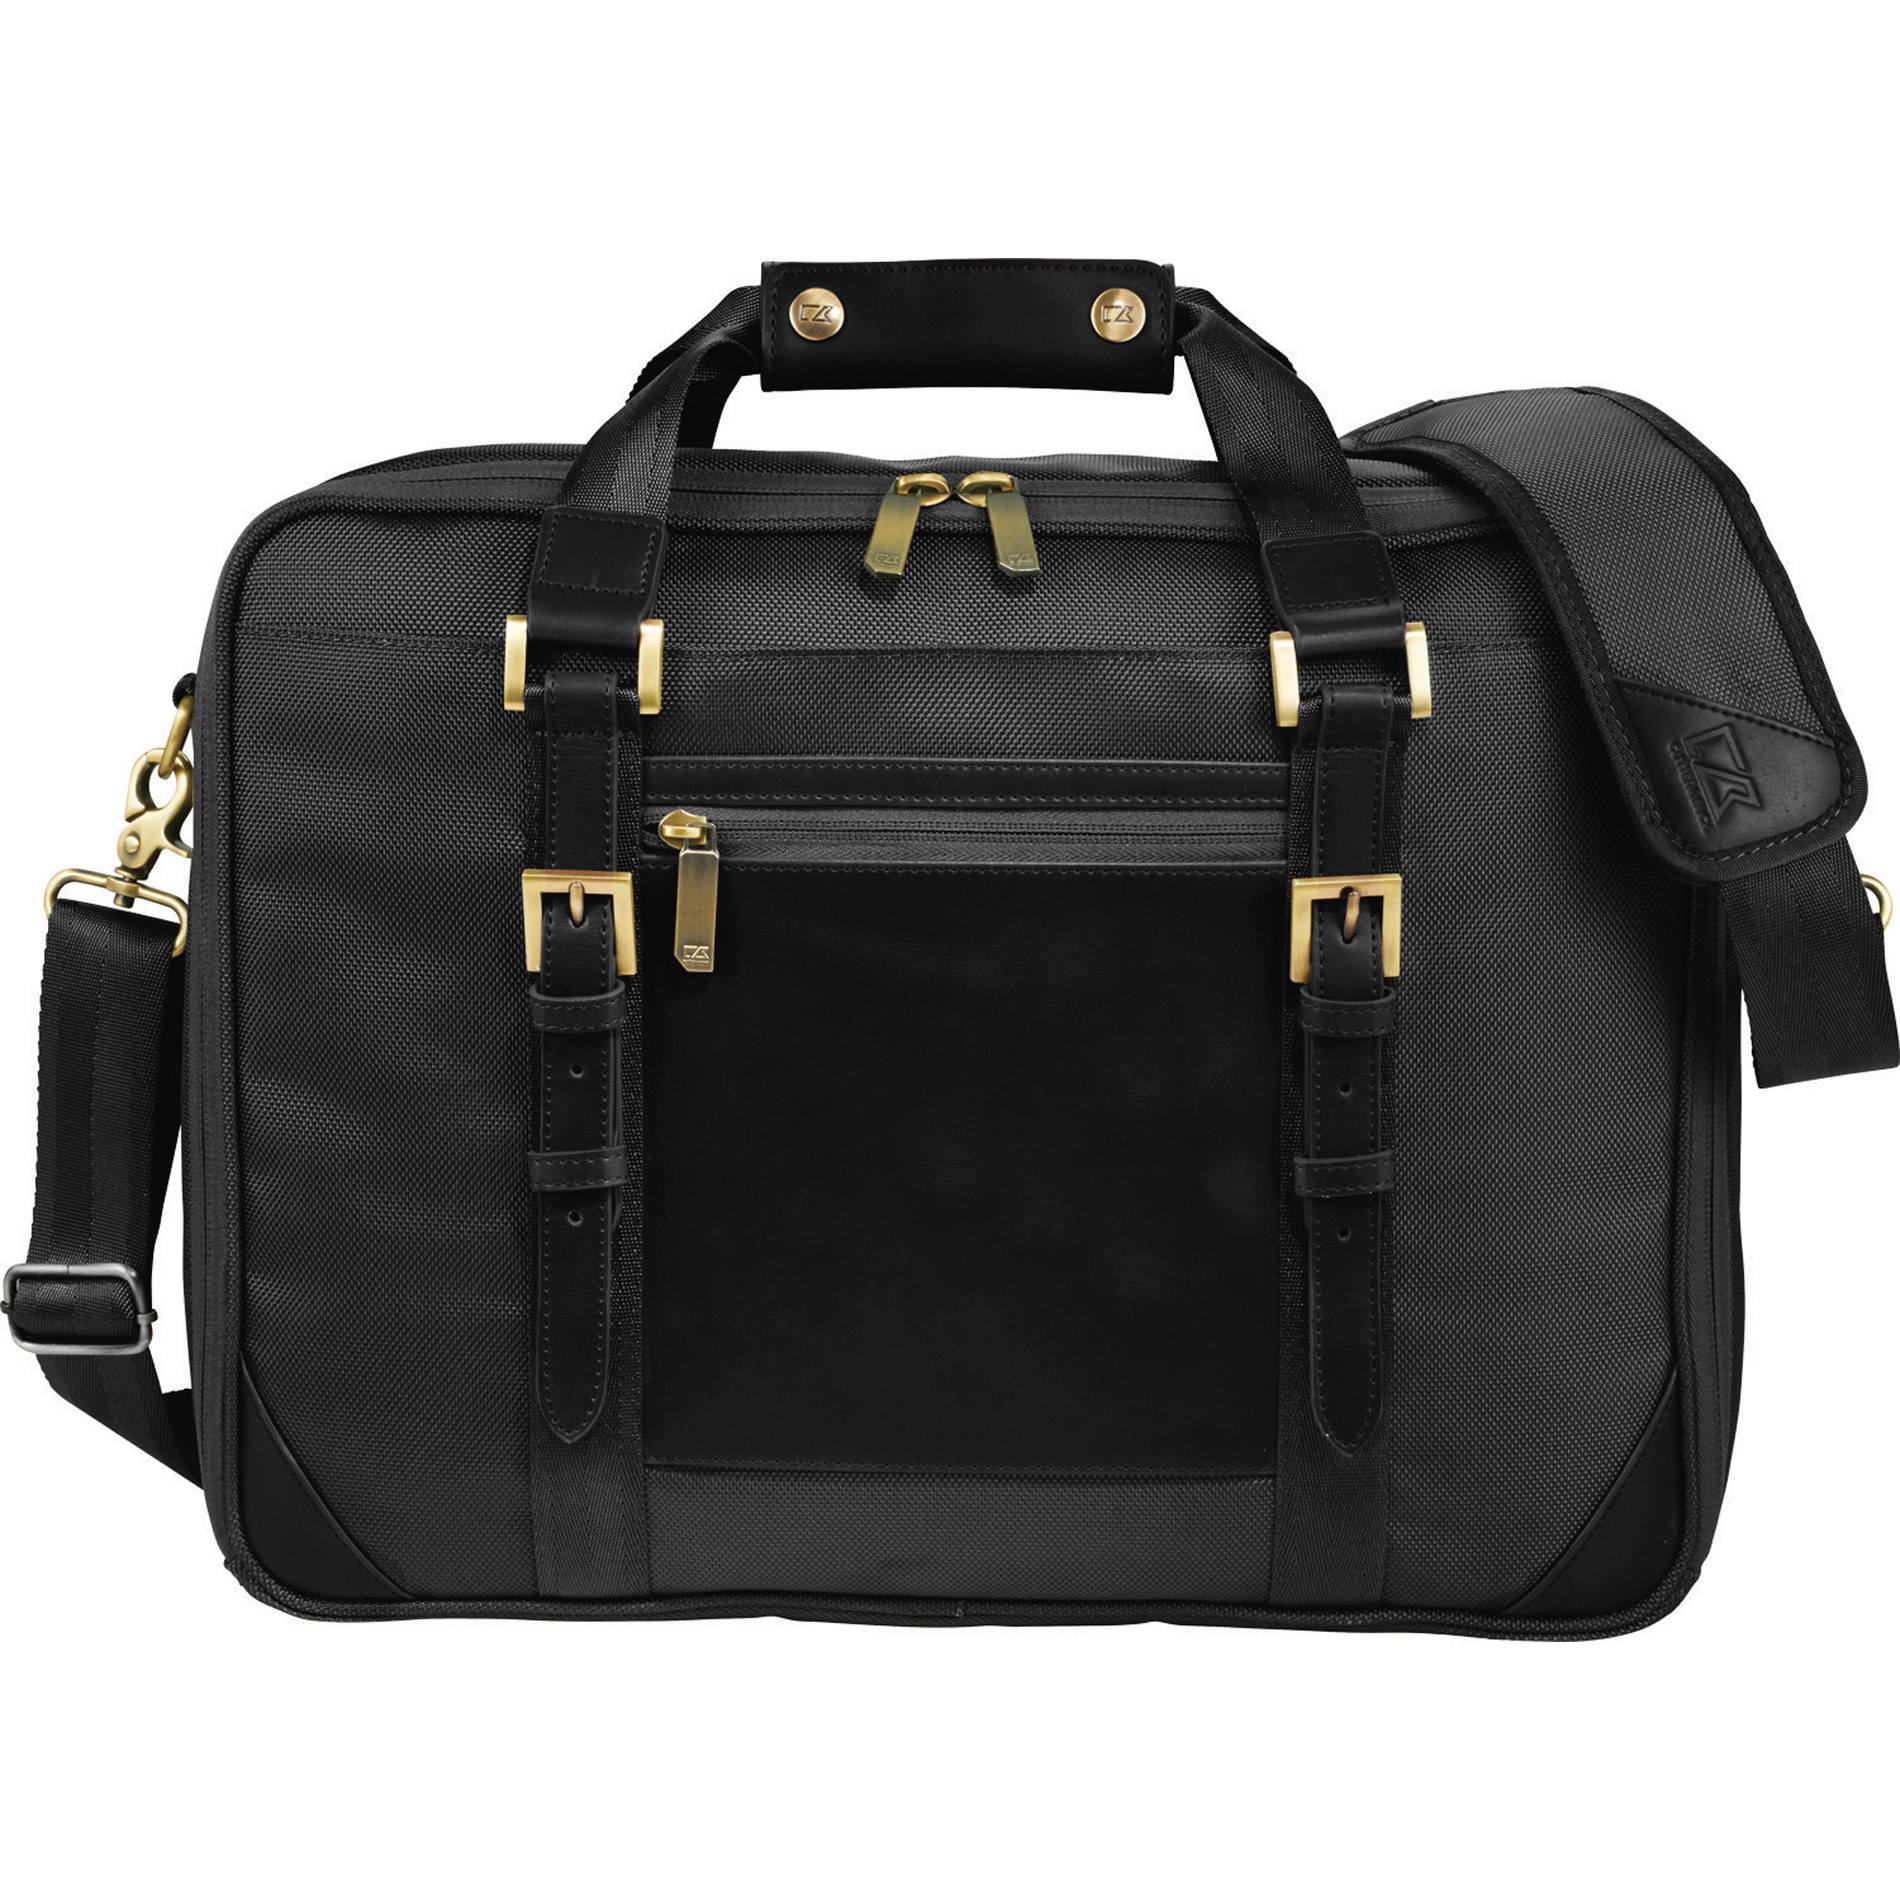 "Cutter & Buck 9870-43 - Bainbridge 15"" Computer Briefcase"